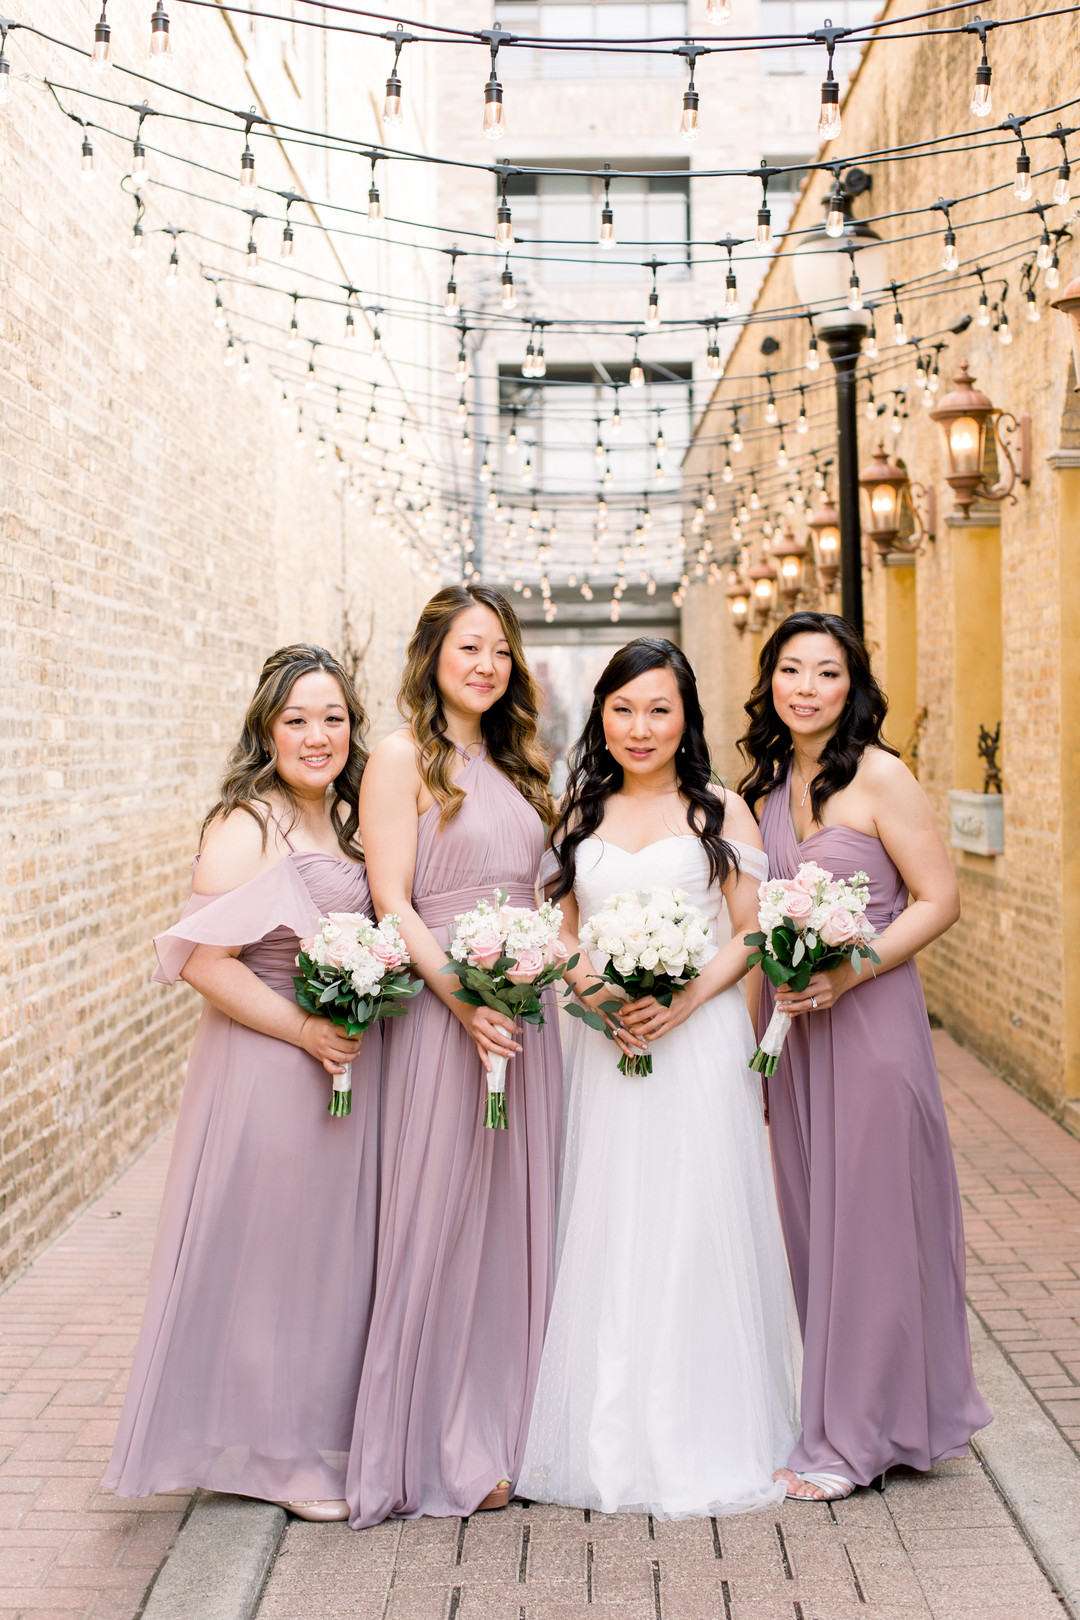 Purple bridesmaids dresses: Spring wedding inspiration captured by Nicole Morisco Photography. Find more spring wedding ideas at CHItheeWED.com!